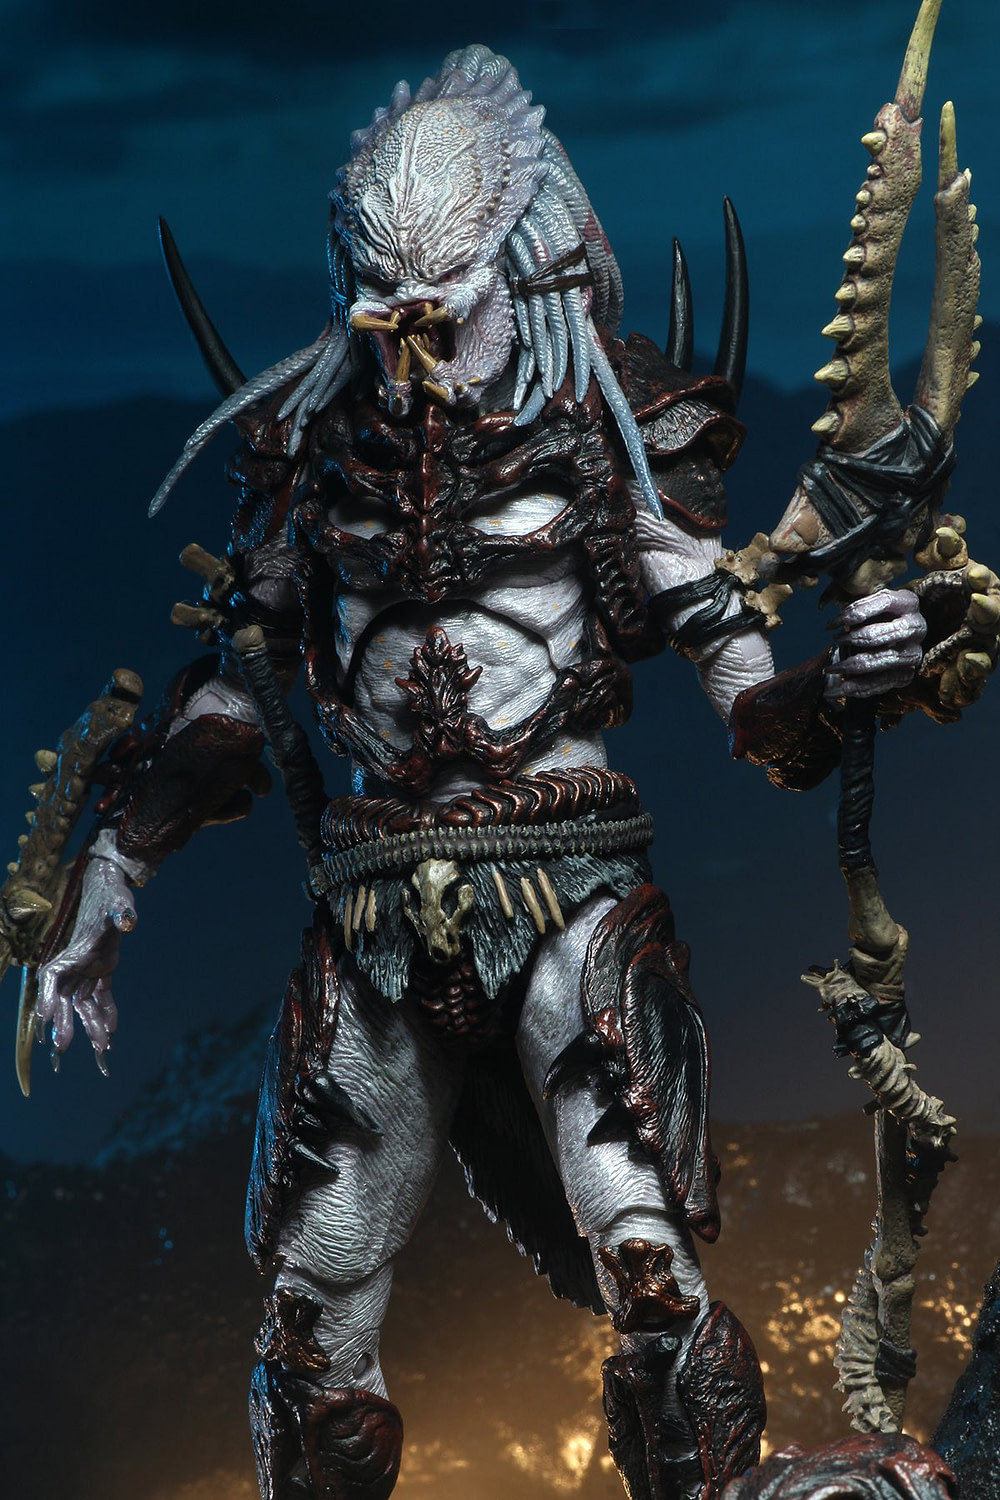 NECA Gives Us a Taste of the Upcoming Alpha Predator Figure